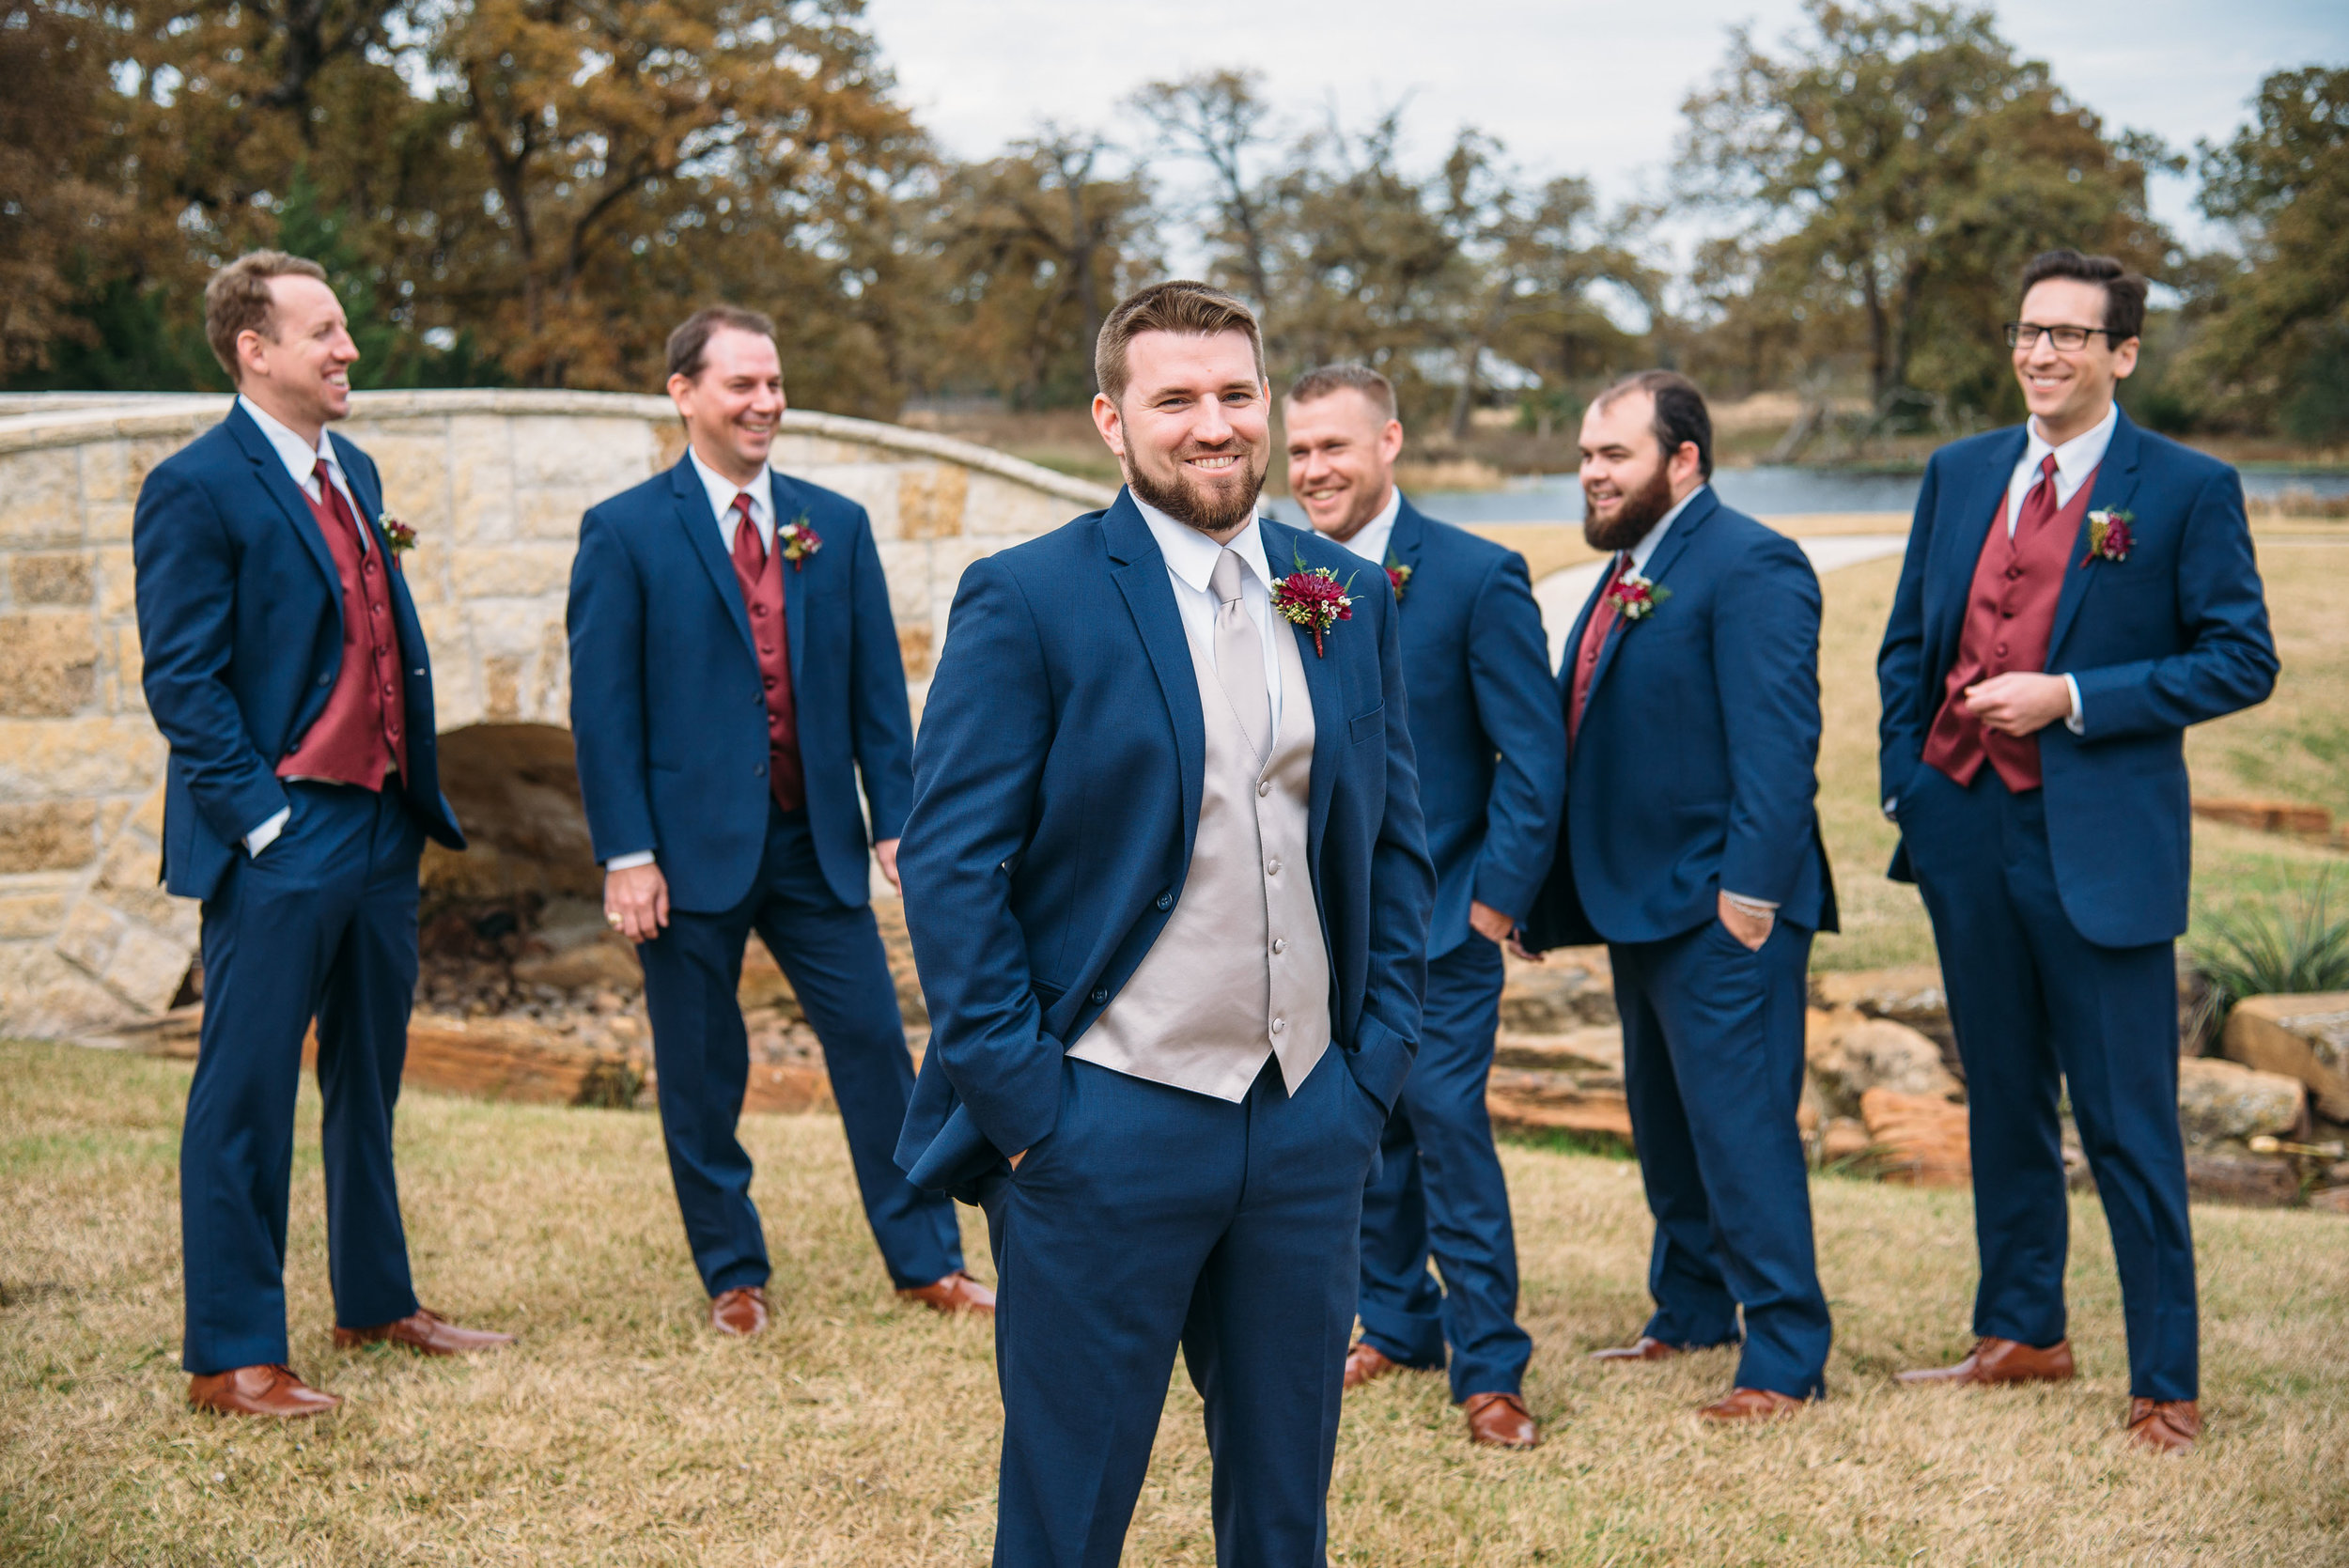 BrownstoneReserve_CollegeStation_WeddingPhotographer_27.jpg